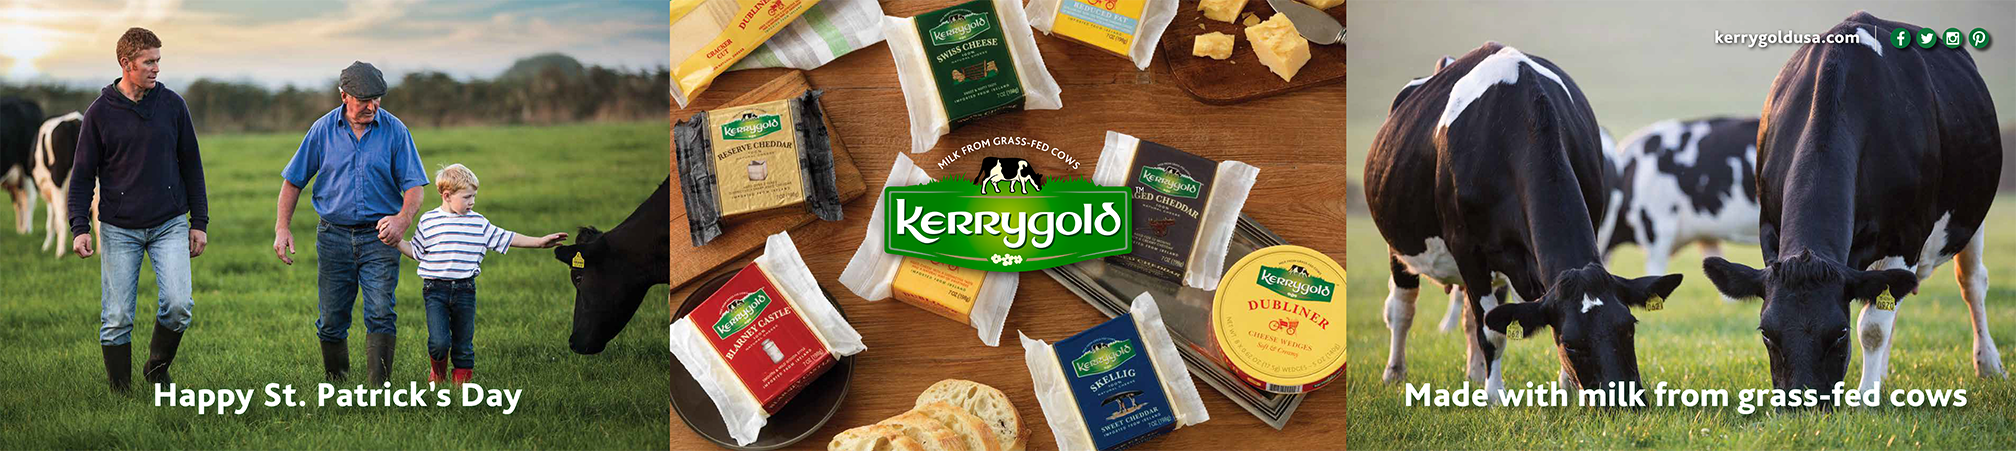 Kerrygold St. Patricks Day large-banner